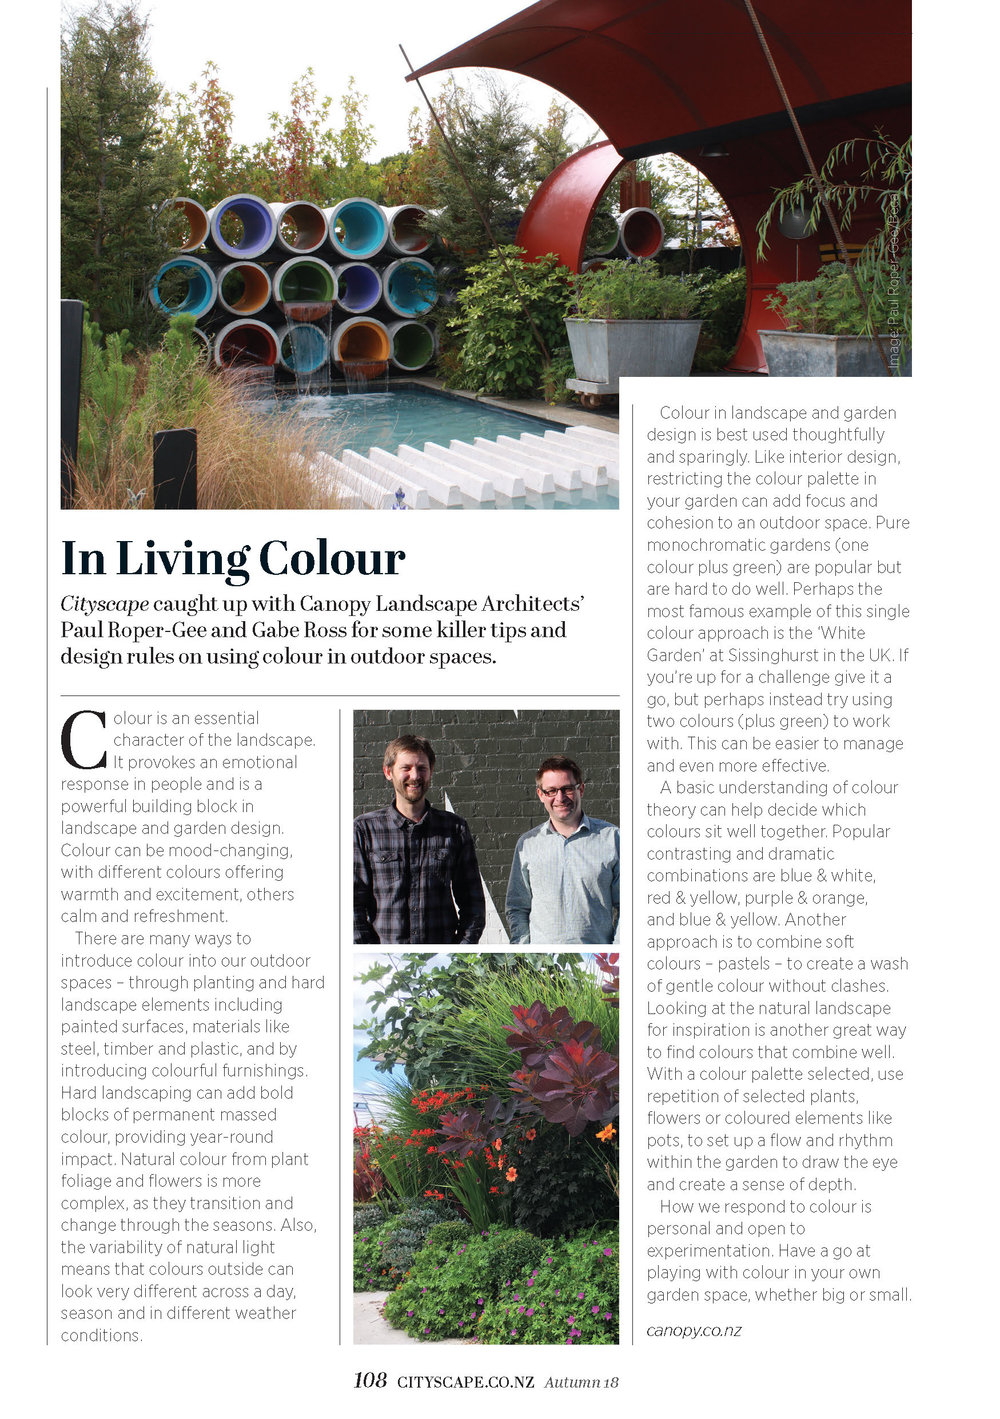 Cityscape_Autumn18_Canopy Landscape Architects_p108